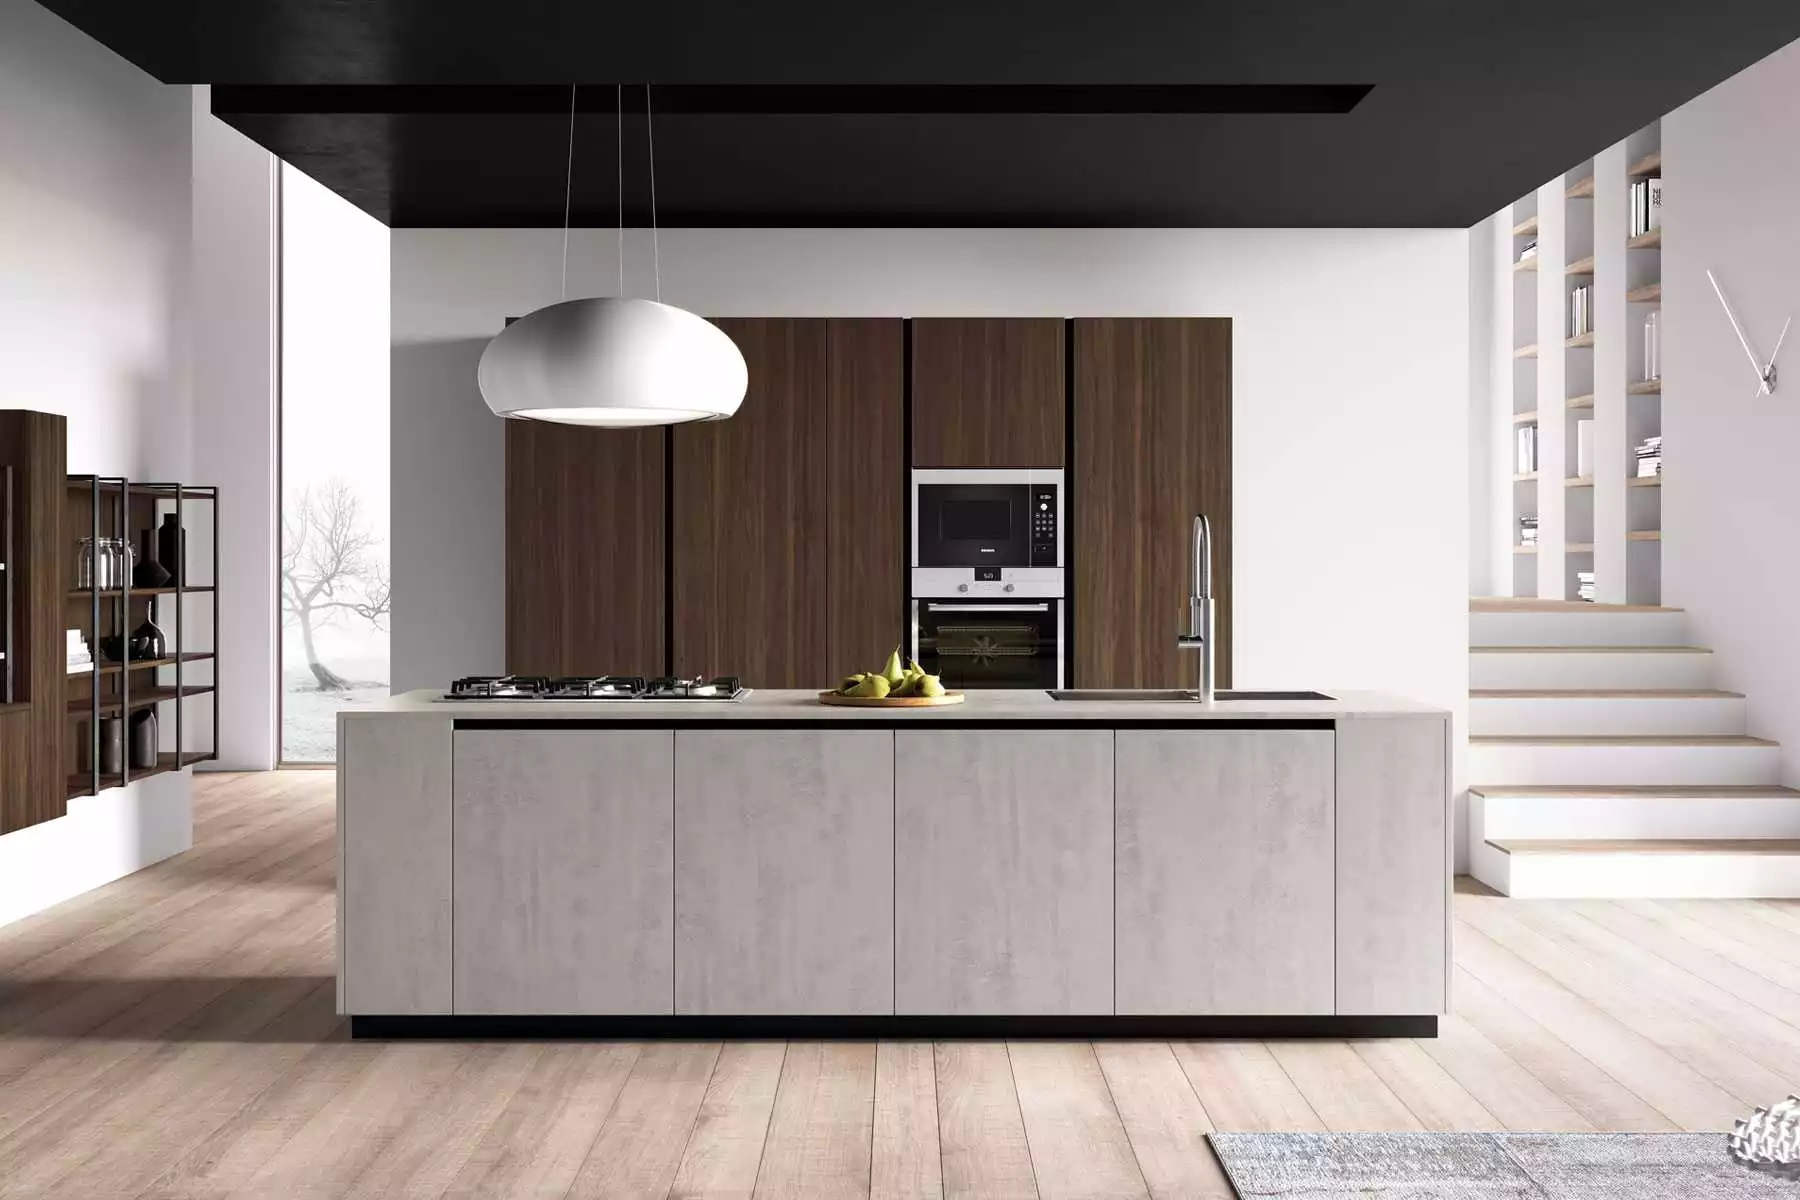 How much does a kitchen cost?